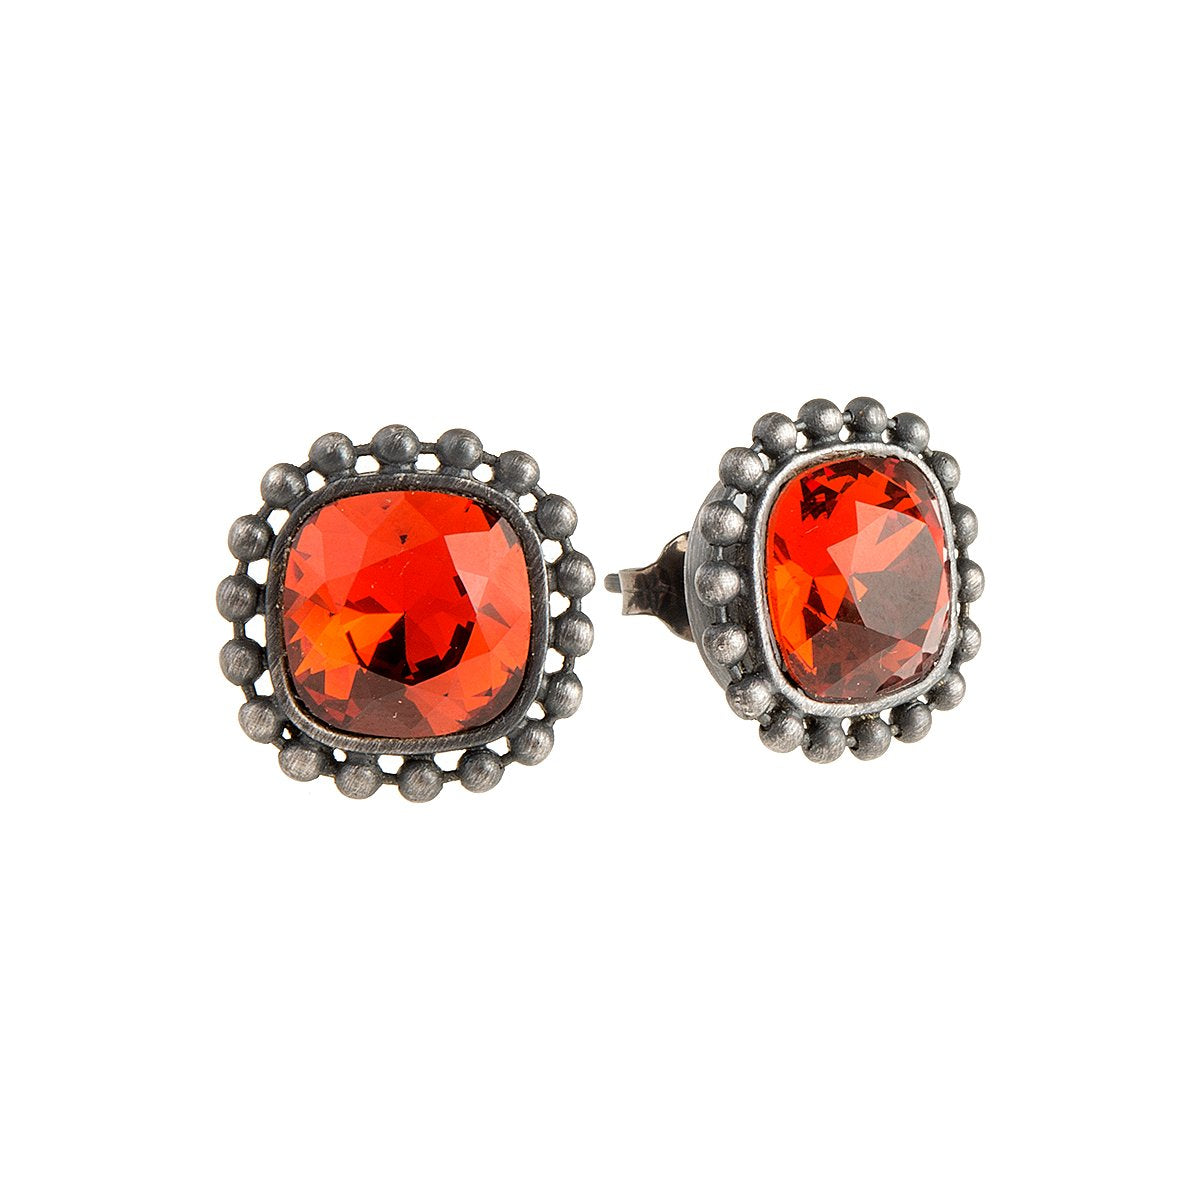 Earrings from Ray collection - RYK21-6